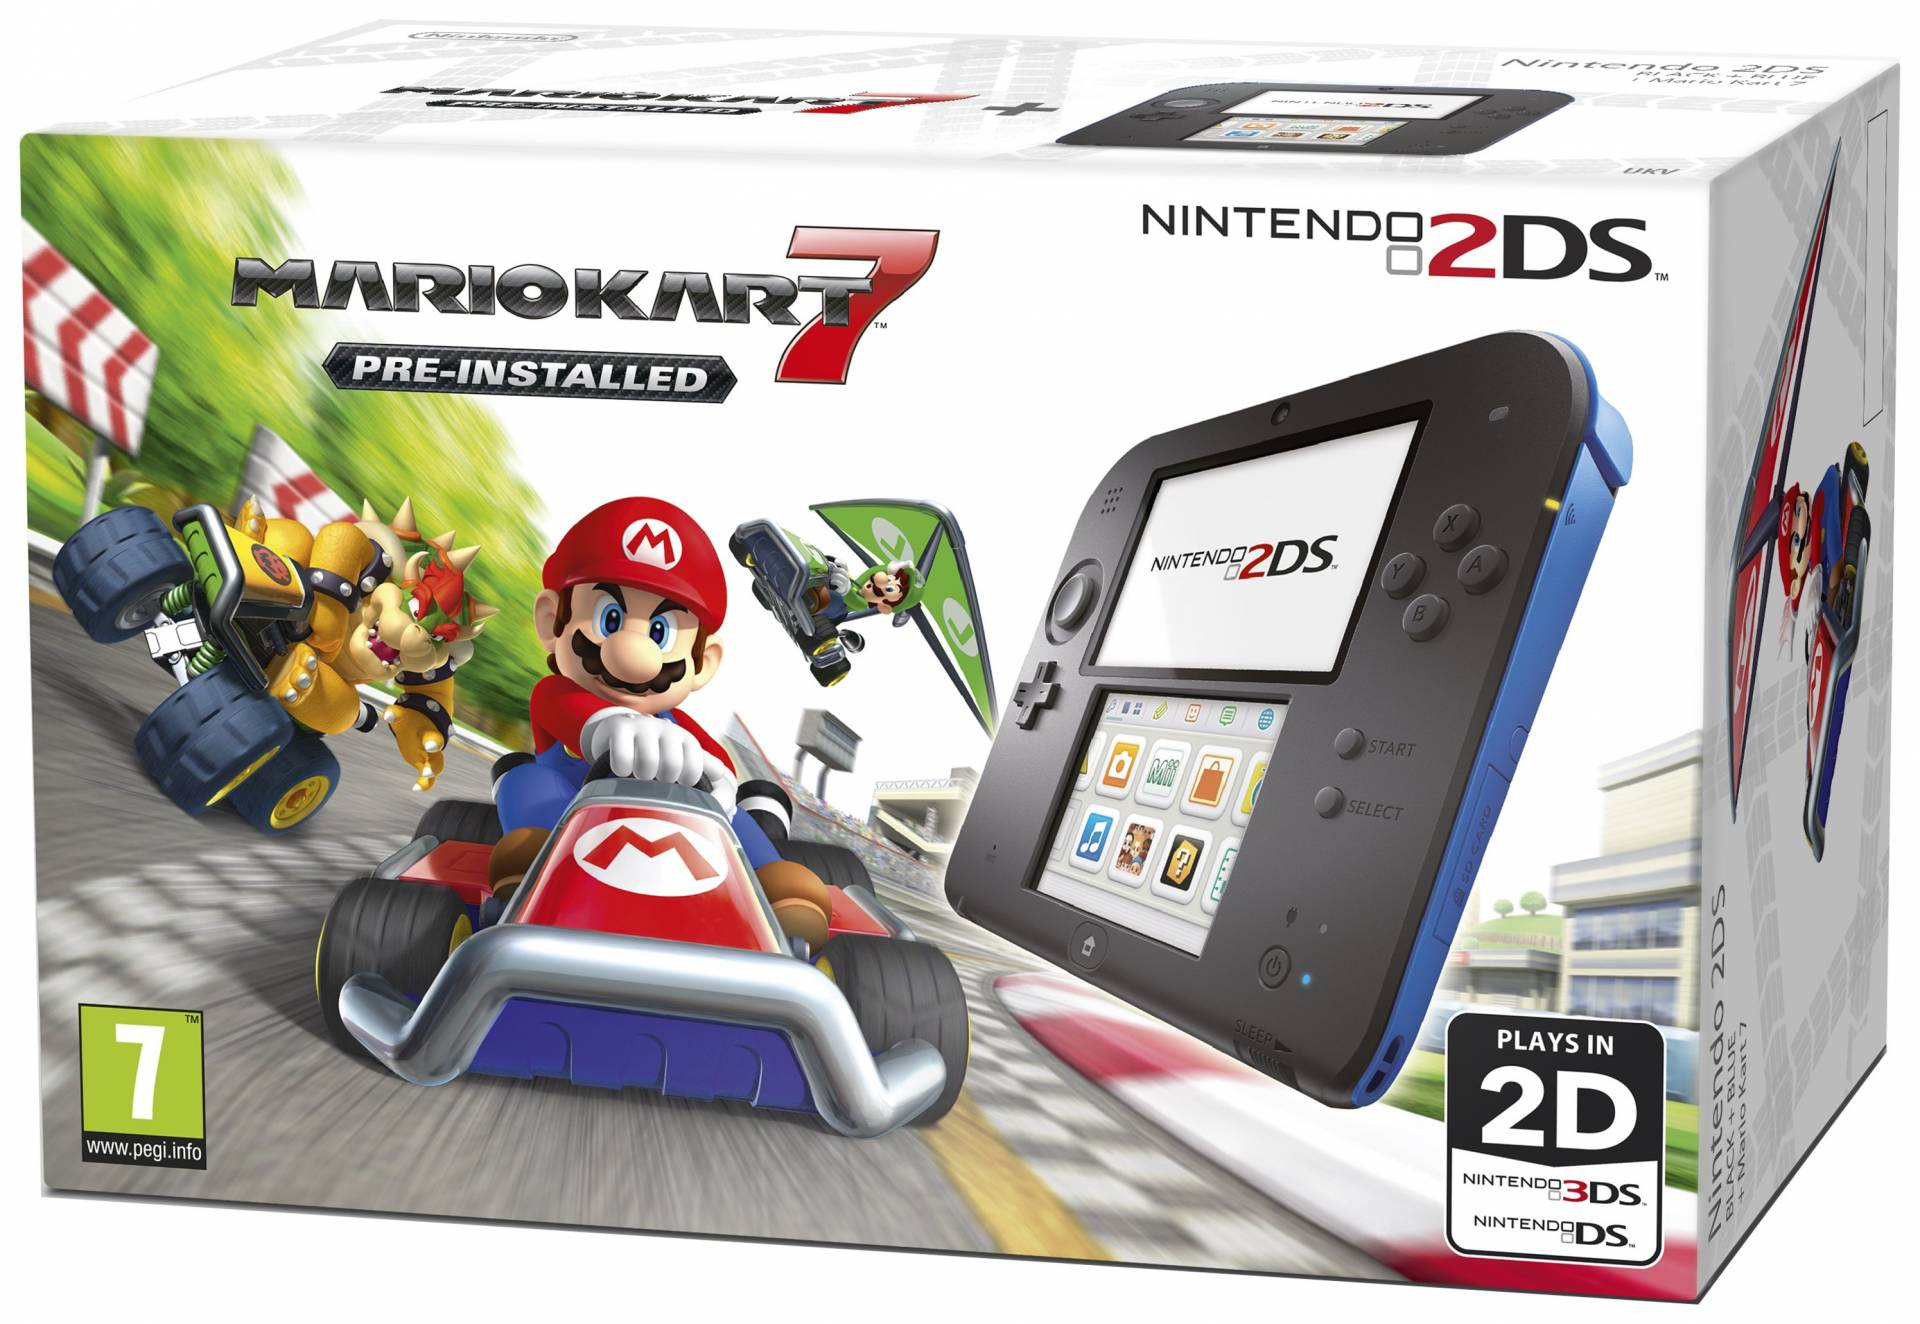 Nintendo - 2DS Black & Blue Console with Mario - Kart 7 Bundle from Nintendo